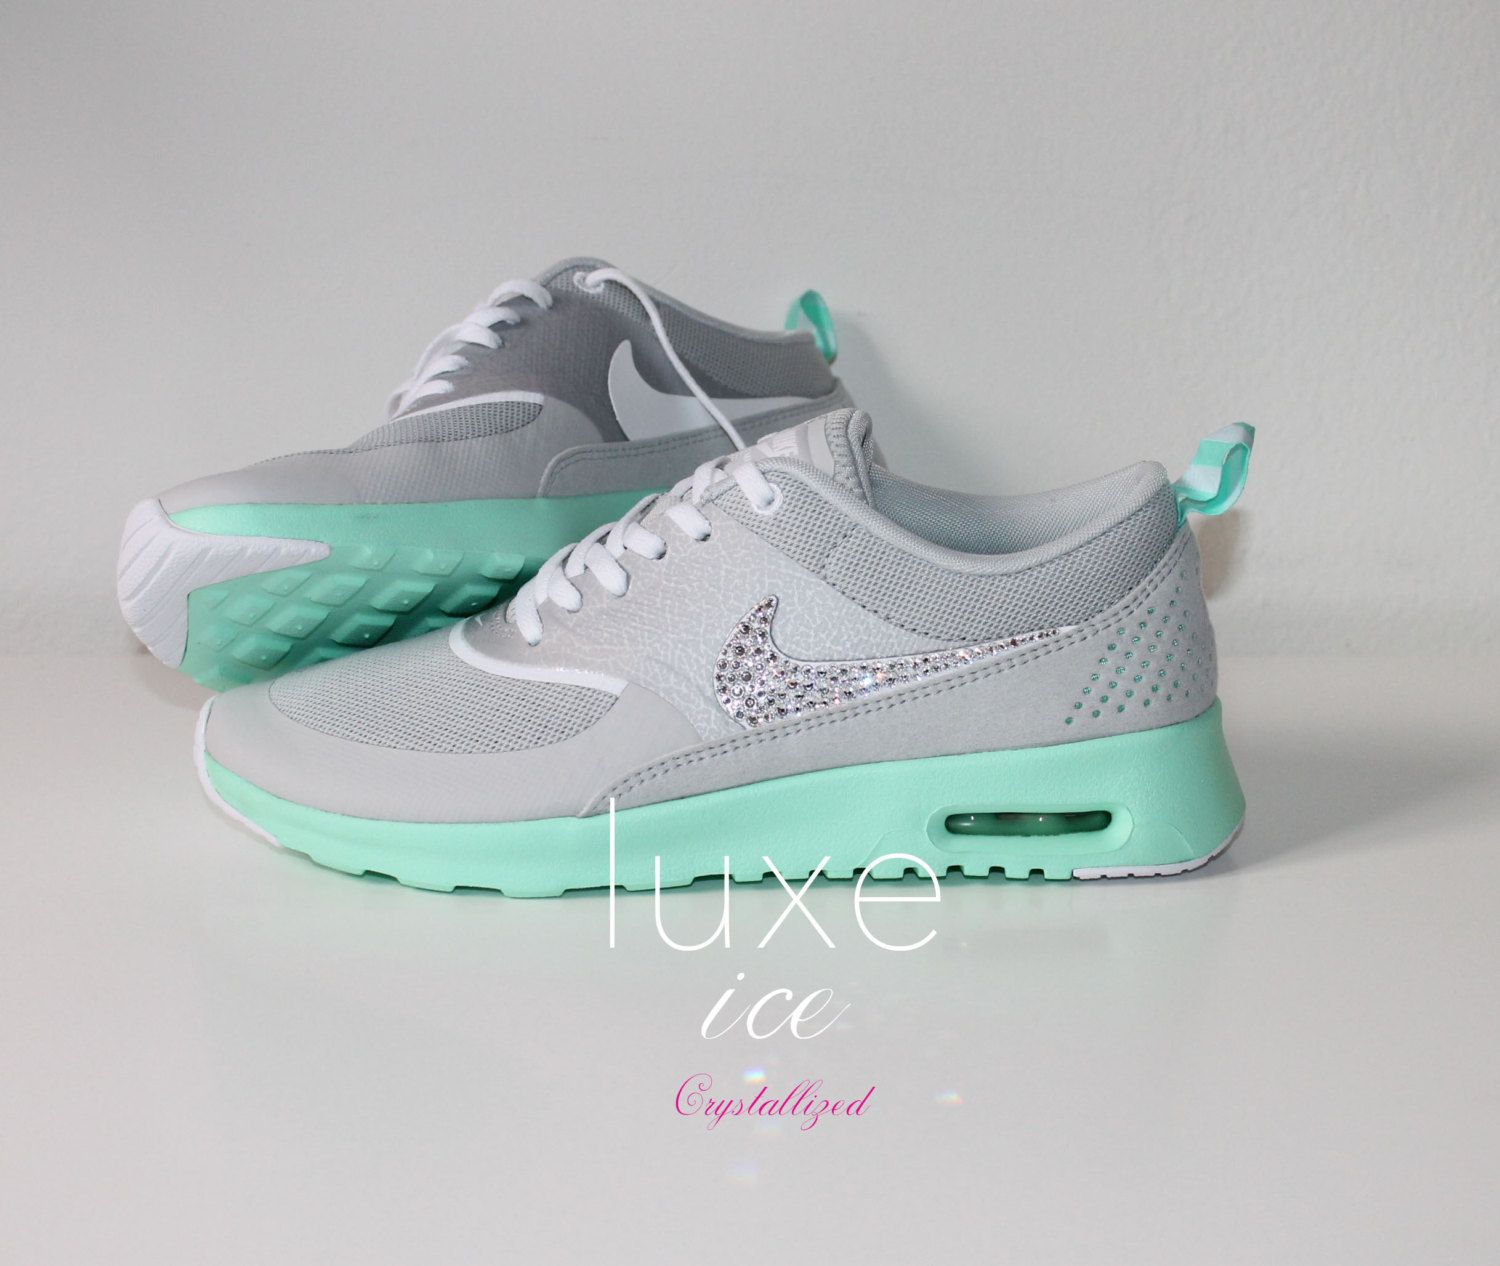 Nike Air Max Thea shoes wSwarovski Crystals detail by